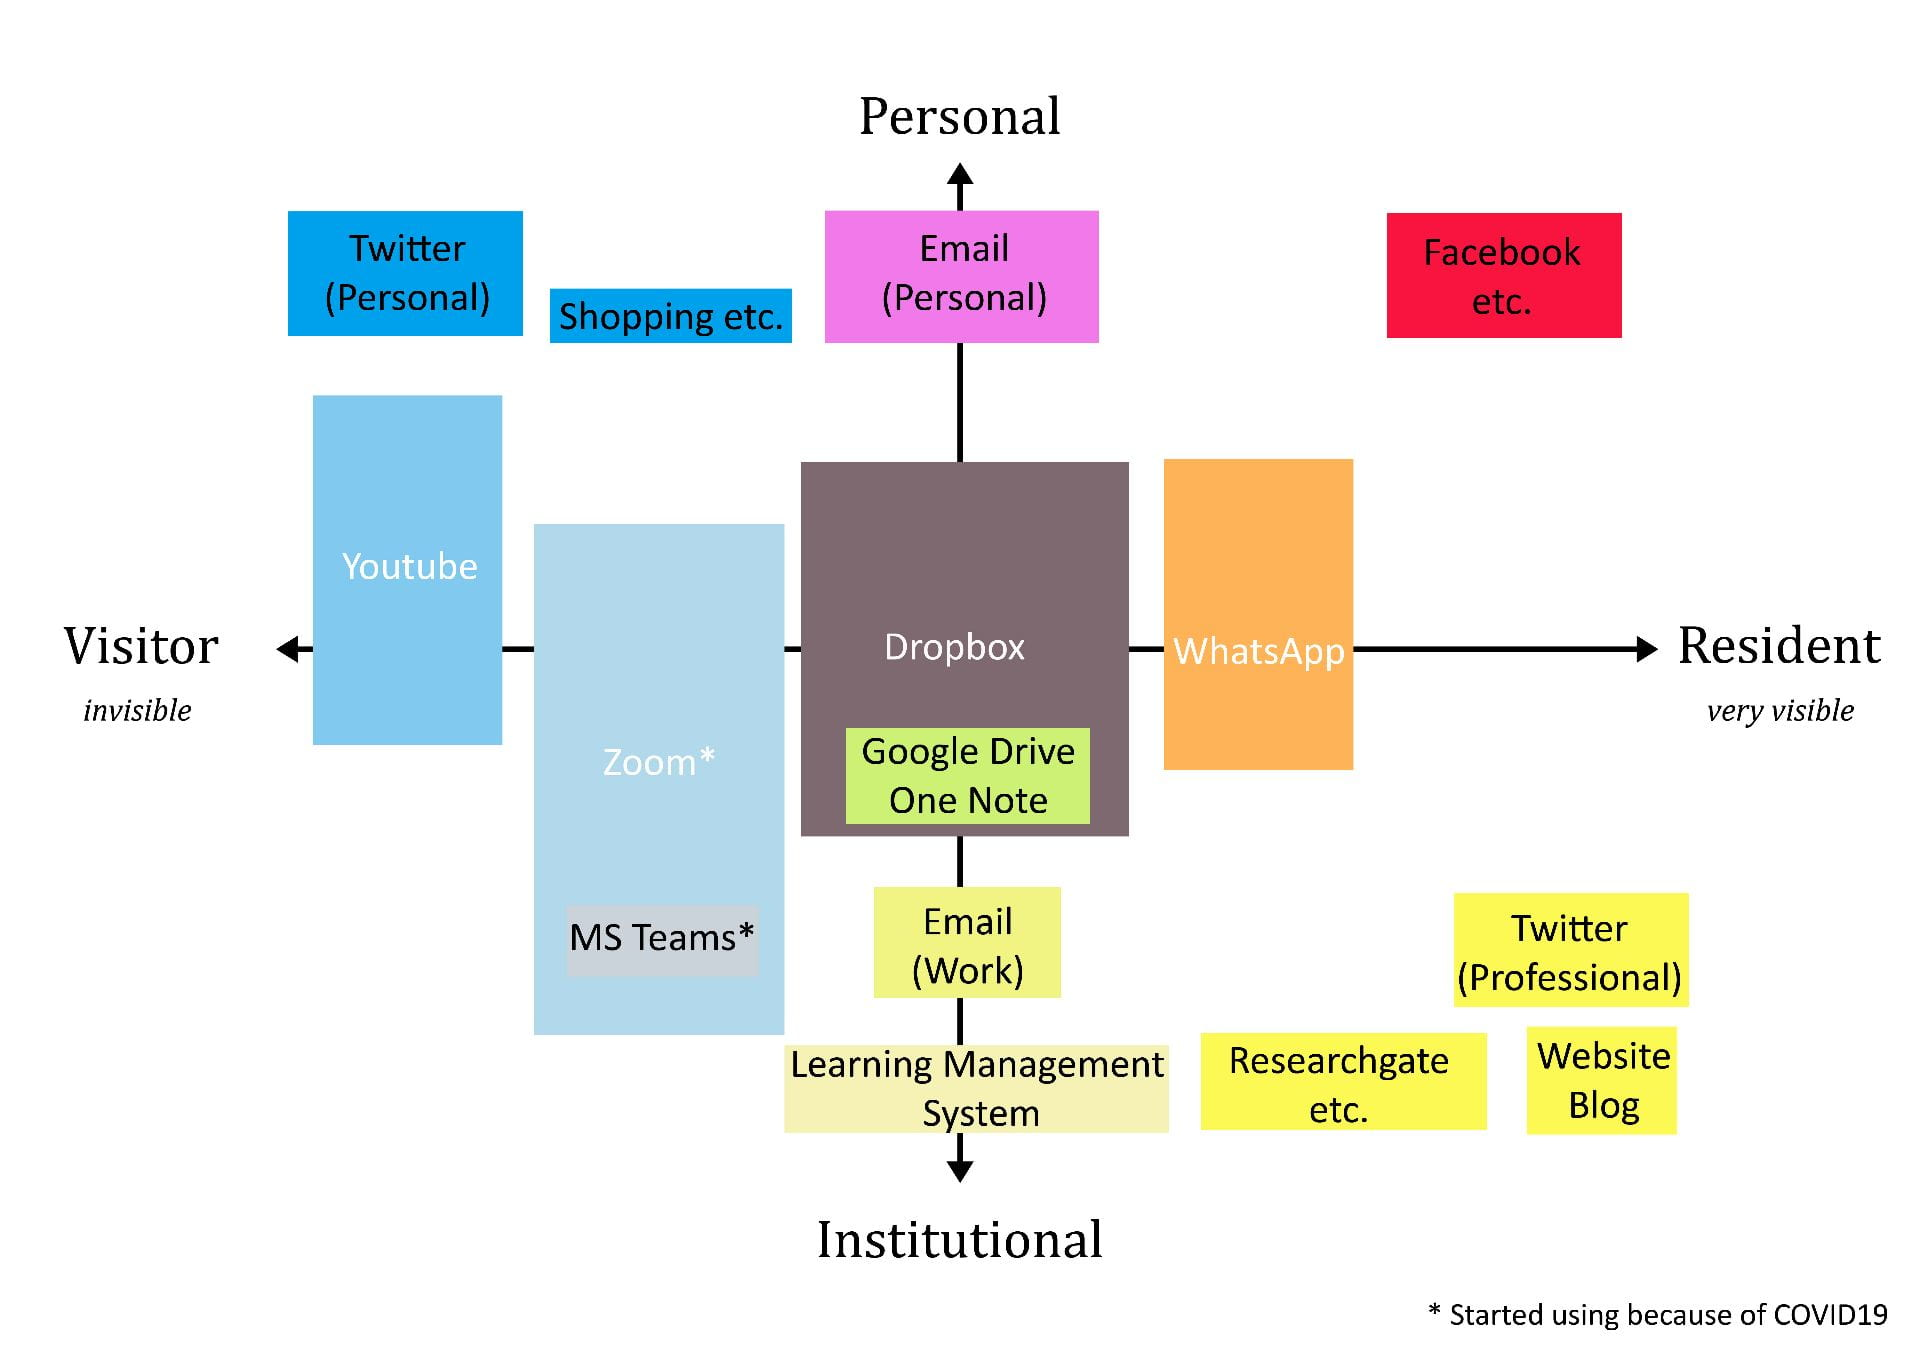 My digital presence along a vertical 'Personal-Professional' axis, and a horizontal 'Visitor-Resident' axis